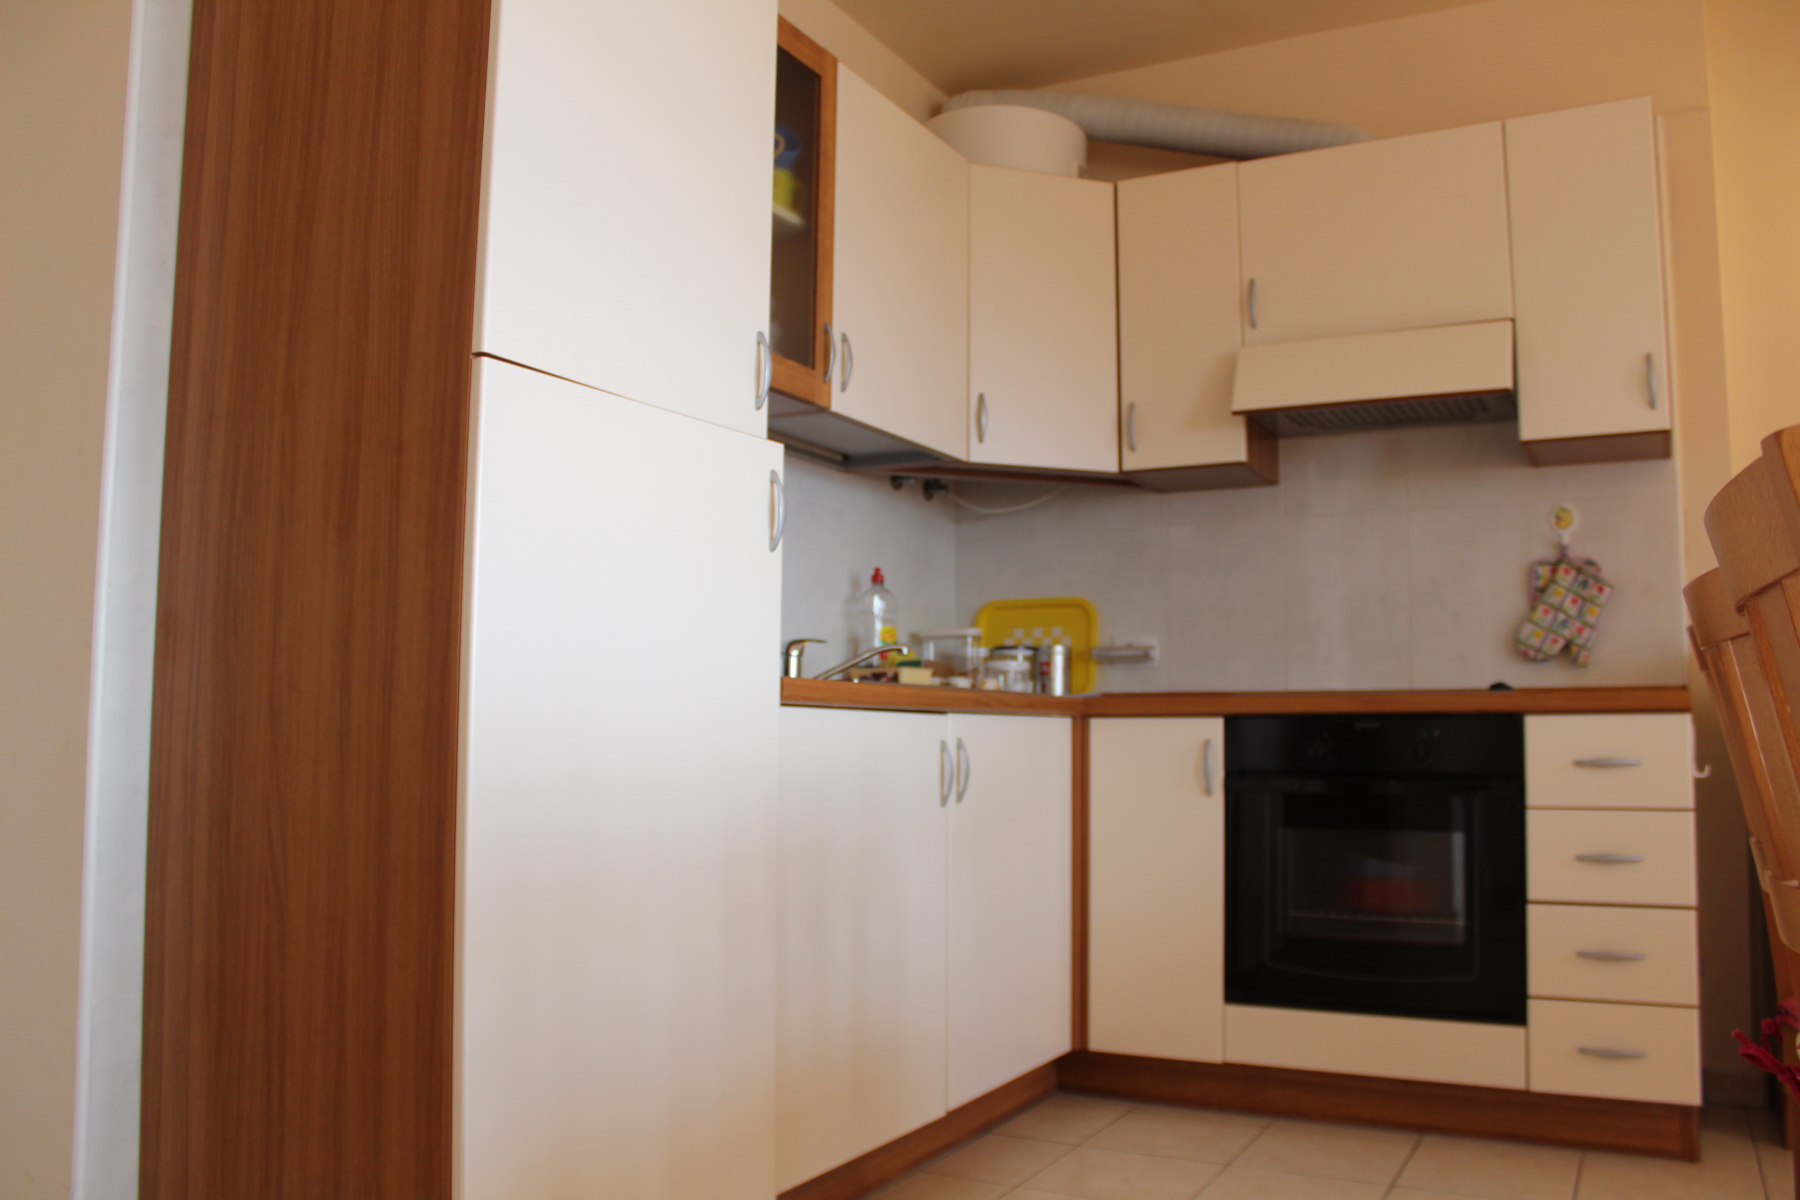 Properties for Sale in Tenerife, Canary Islands, Spain | SylkWayStar Real Estate. Apartment with 2 bedrooms in Callao Salvaje. Image-25716